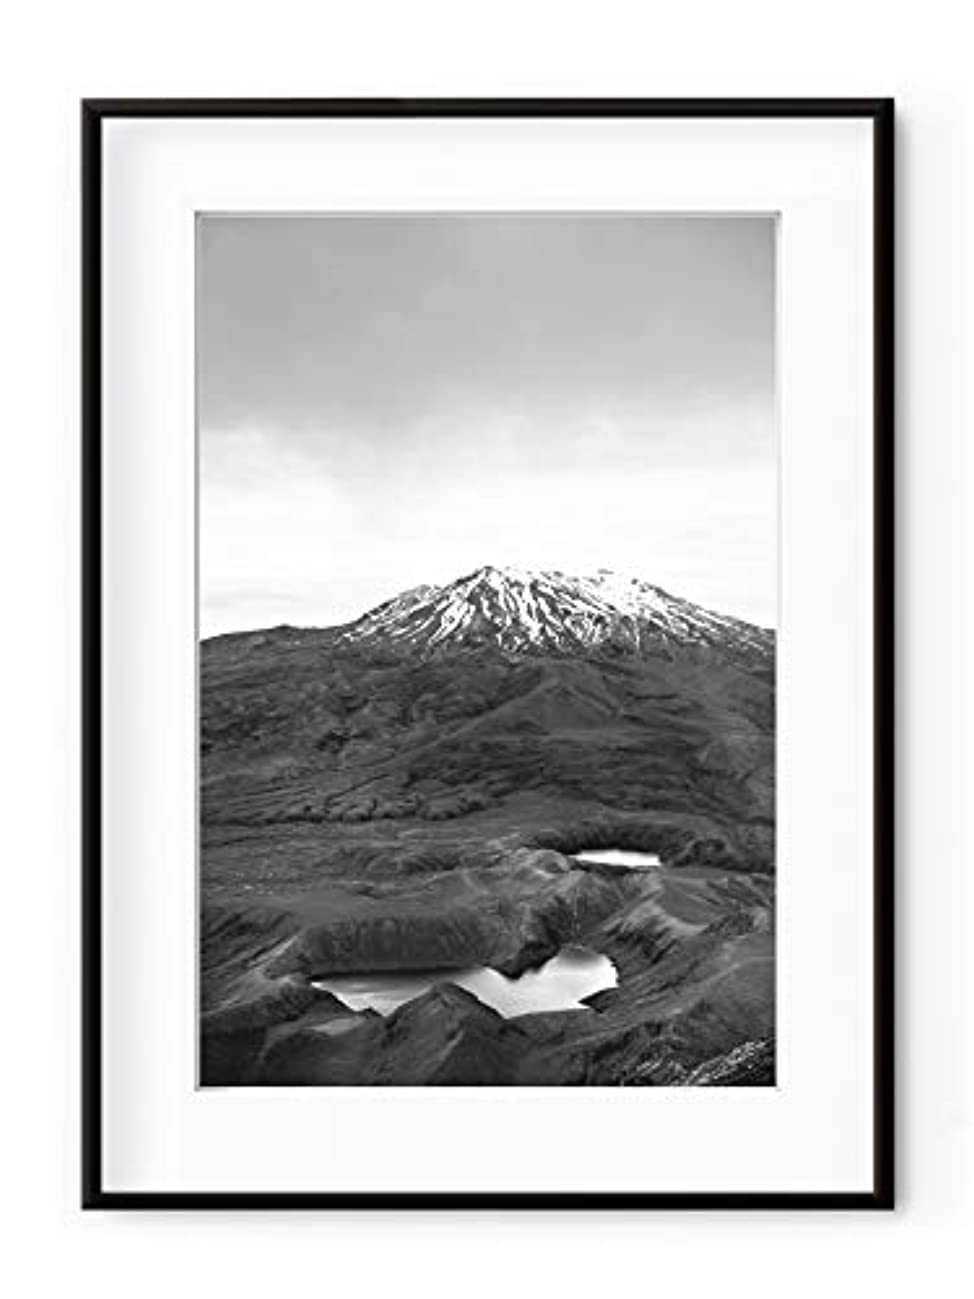 MT Ruapehu, New Zeland, Aluminium Frame, Satin Black, Full Format, Multicolored, 70x100